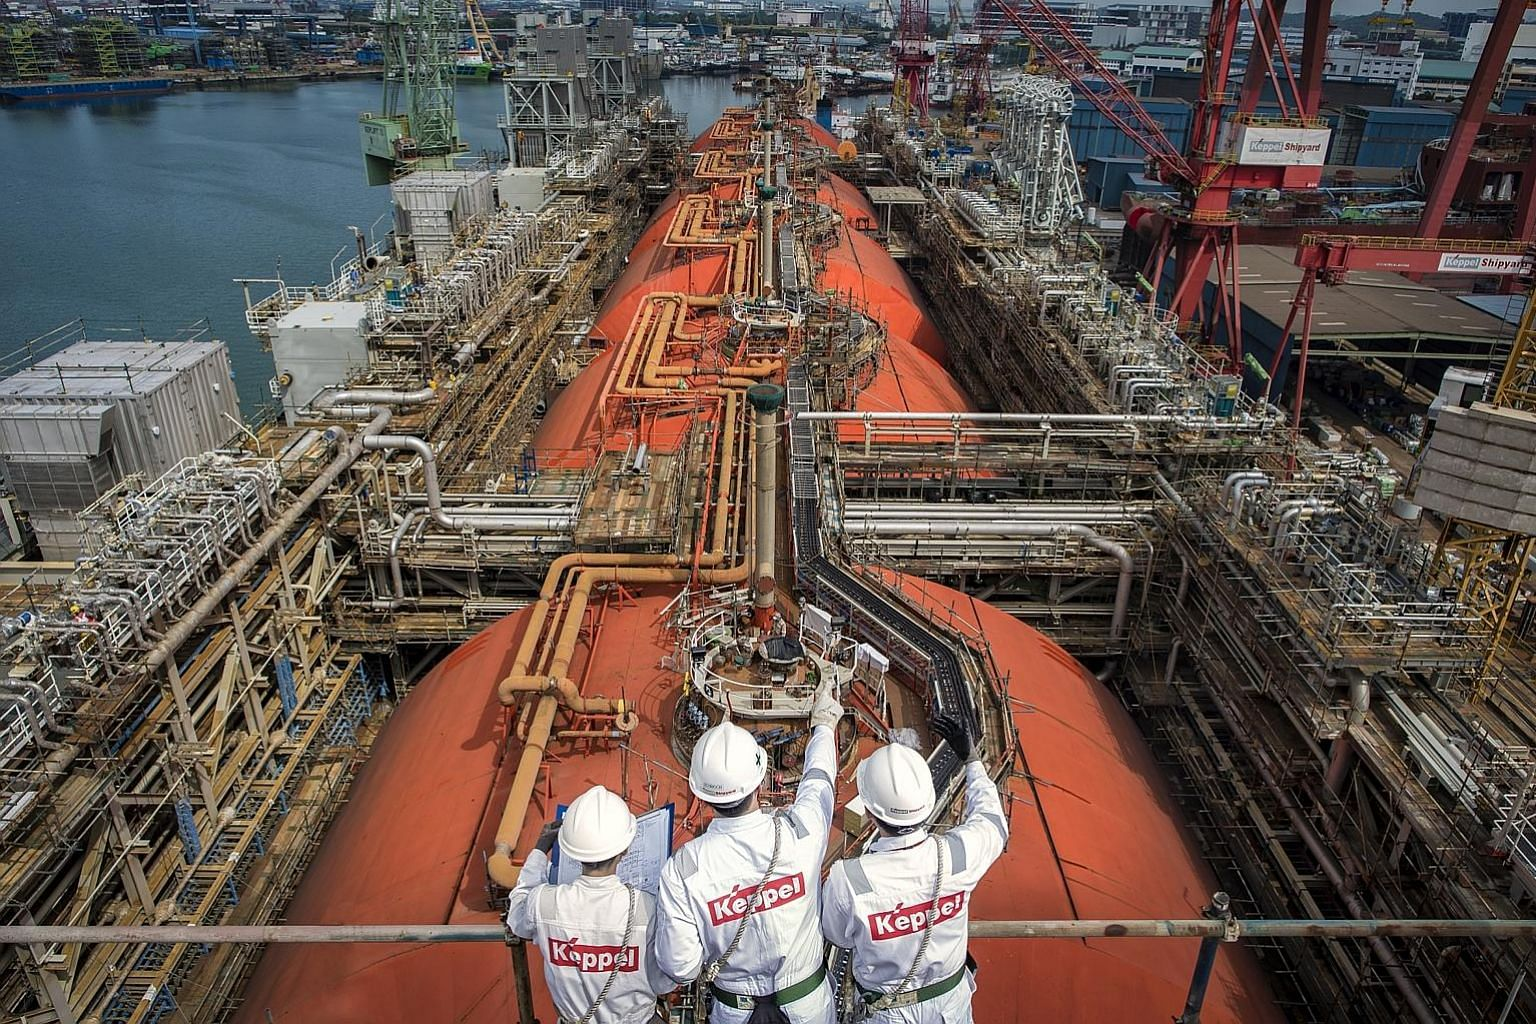 """Keppel's work on the Golar Hilli - set to be the first-of-its-kind conversion of a floating liquefaction vessel - is on track for completion later this year, says chief executive Loh Chin Hua. This will put the group """"ahead of the curve"""" for floating"""